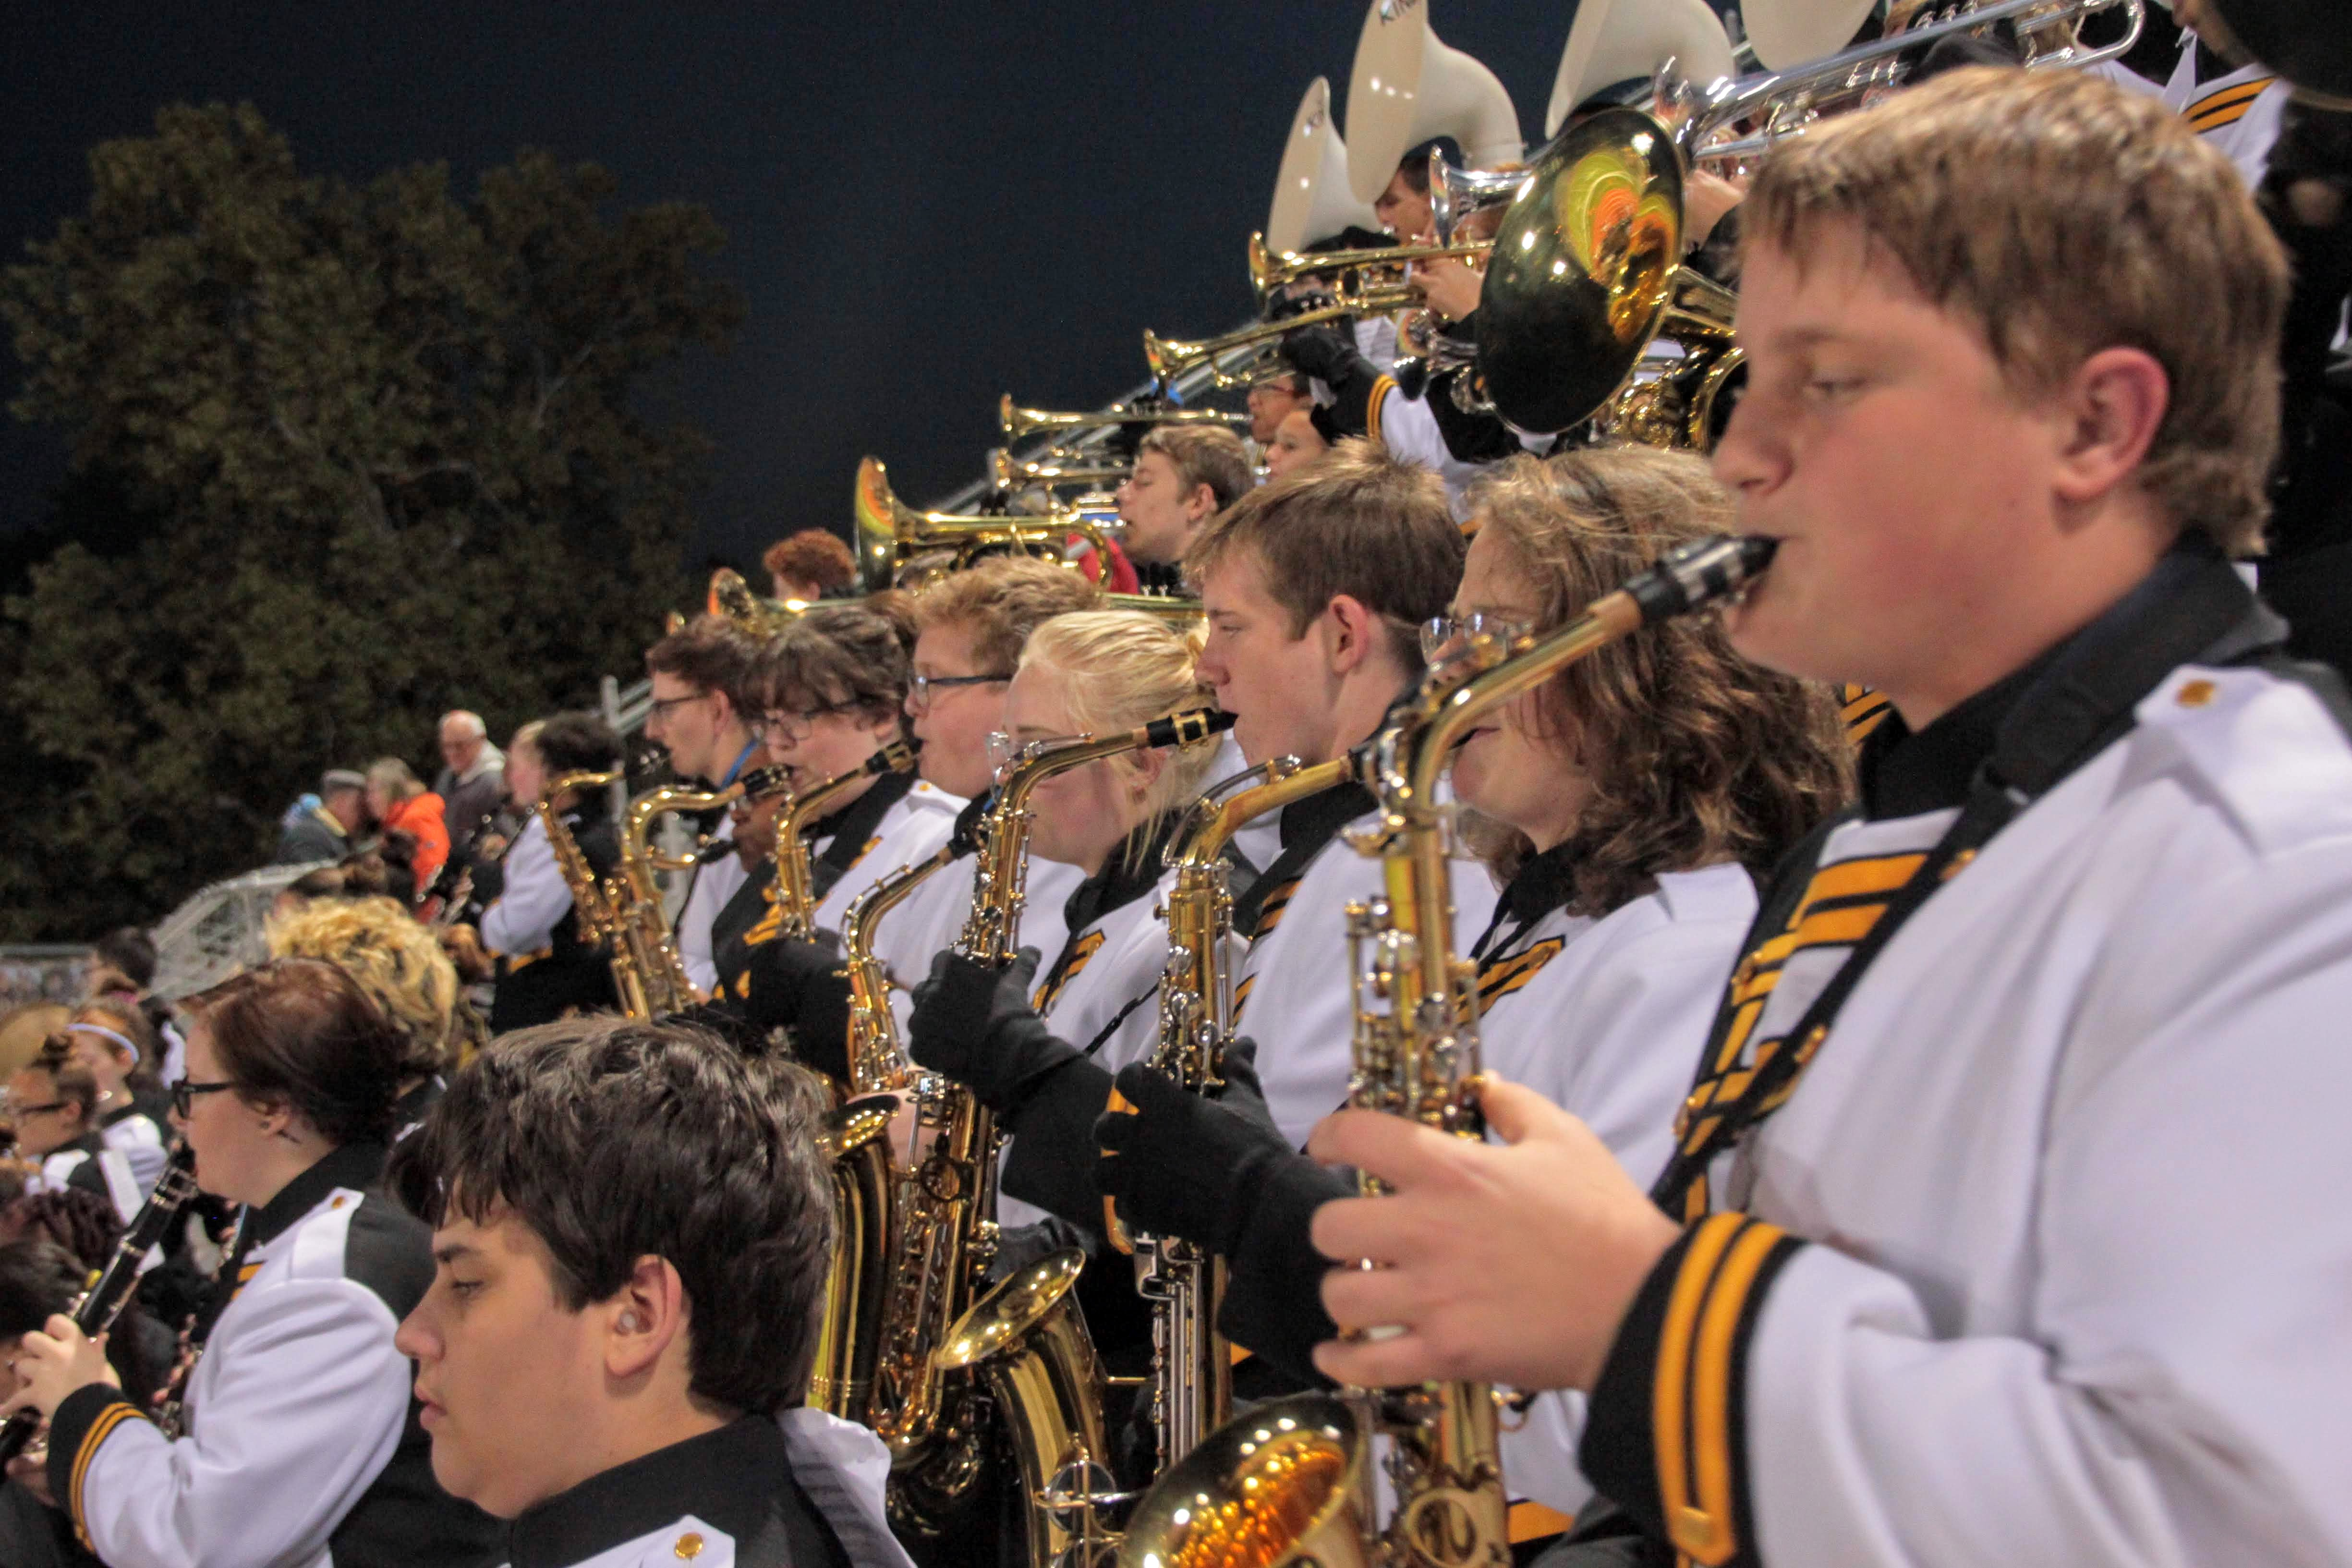 Shawnee Mission West Pride Band playing at a football game